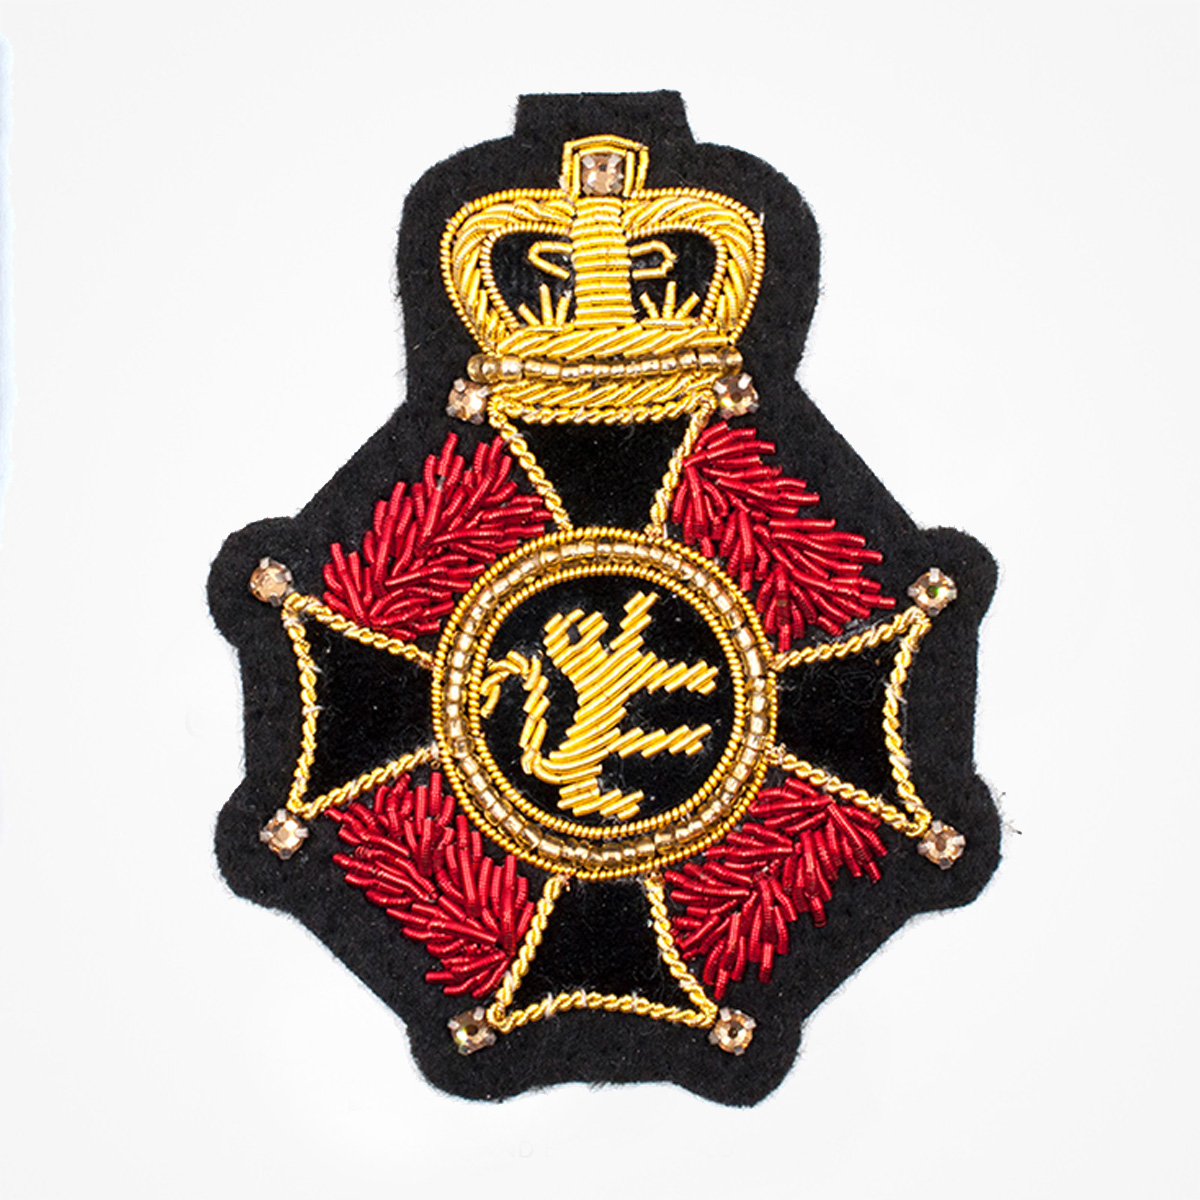 Italian Red Lion Cross Retro style Embroidered wire bullion blazer badges - Fashionable 3D embroidered look Made by skilled artisans Bullion wire and silk thread hand Stitched on Black color Felt Available in gold and silver colors Size = 75 mm height 60 mm width sewon backing: Perfect for caps, sports jacket, leather jackets, blazer coat, Blazer Pocket, shirts uniforms, Accessories and many More Pin backing: easy to removable 5